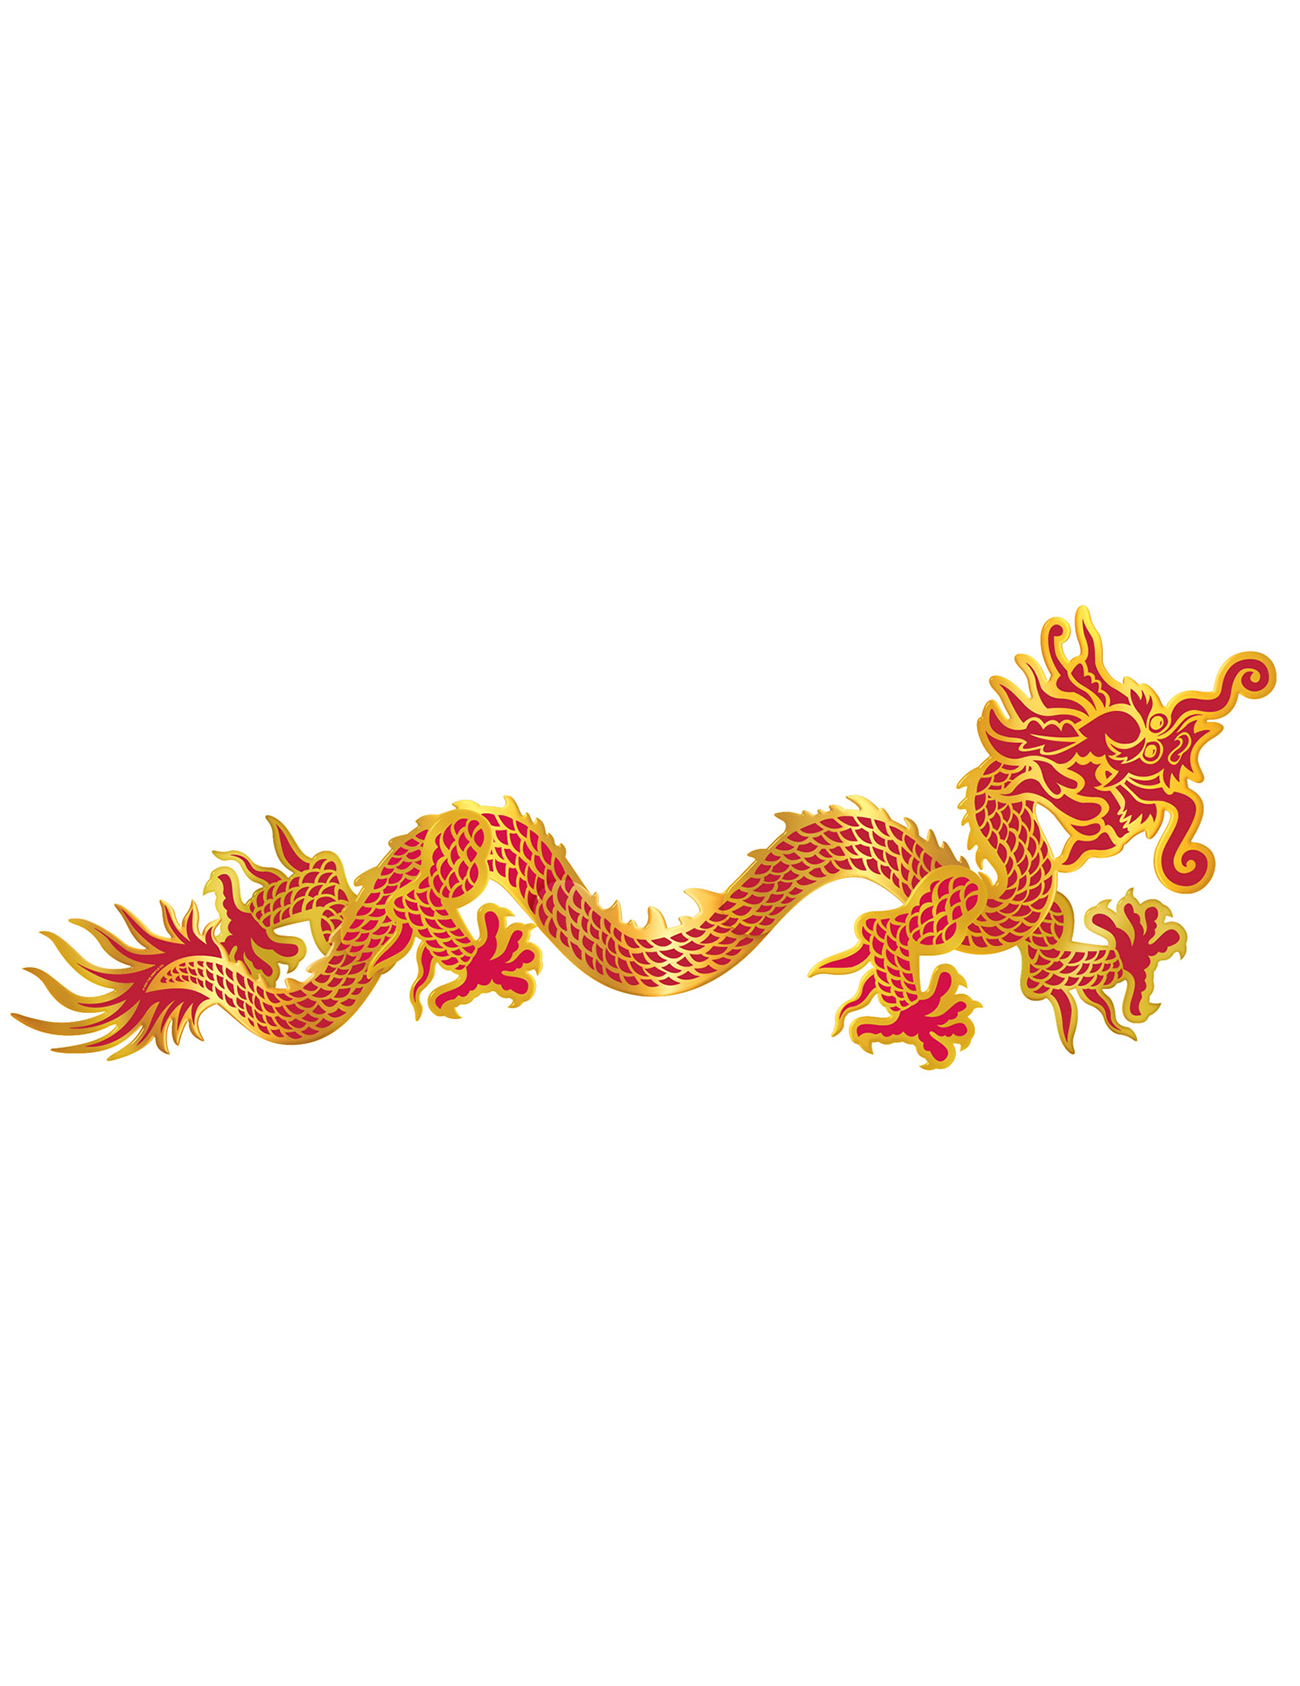 D coration murale dragon rouge et or nouvel an chinois for Decoration gateau nouvel an